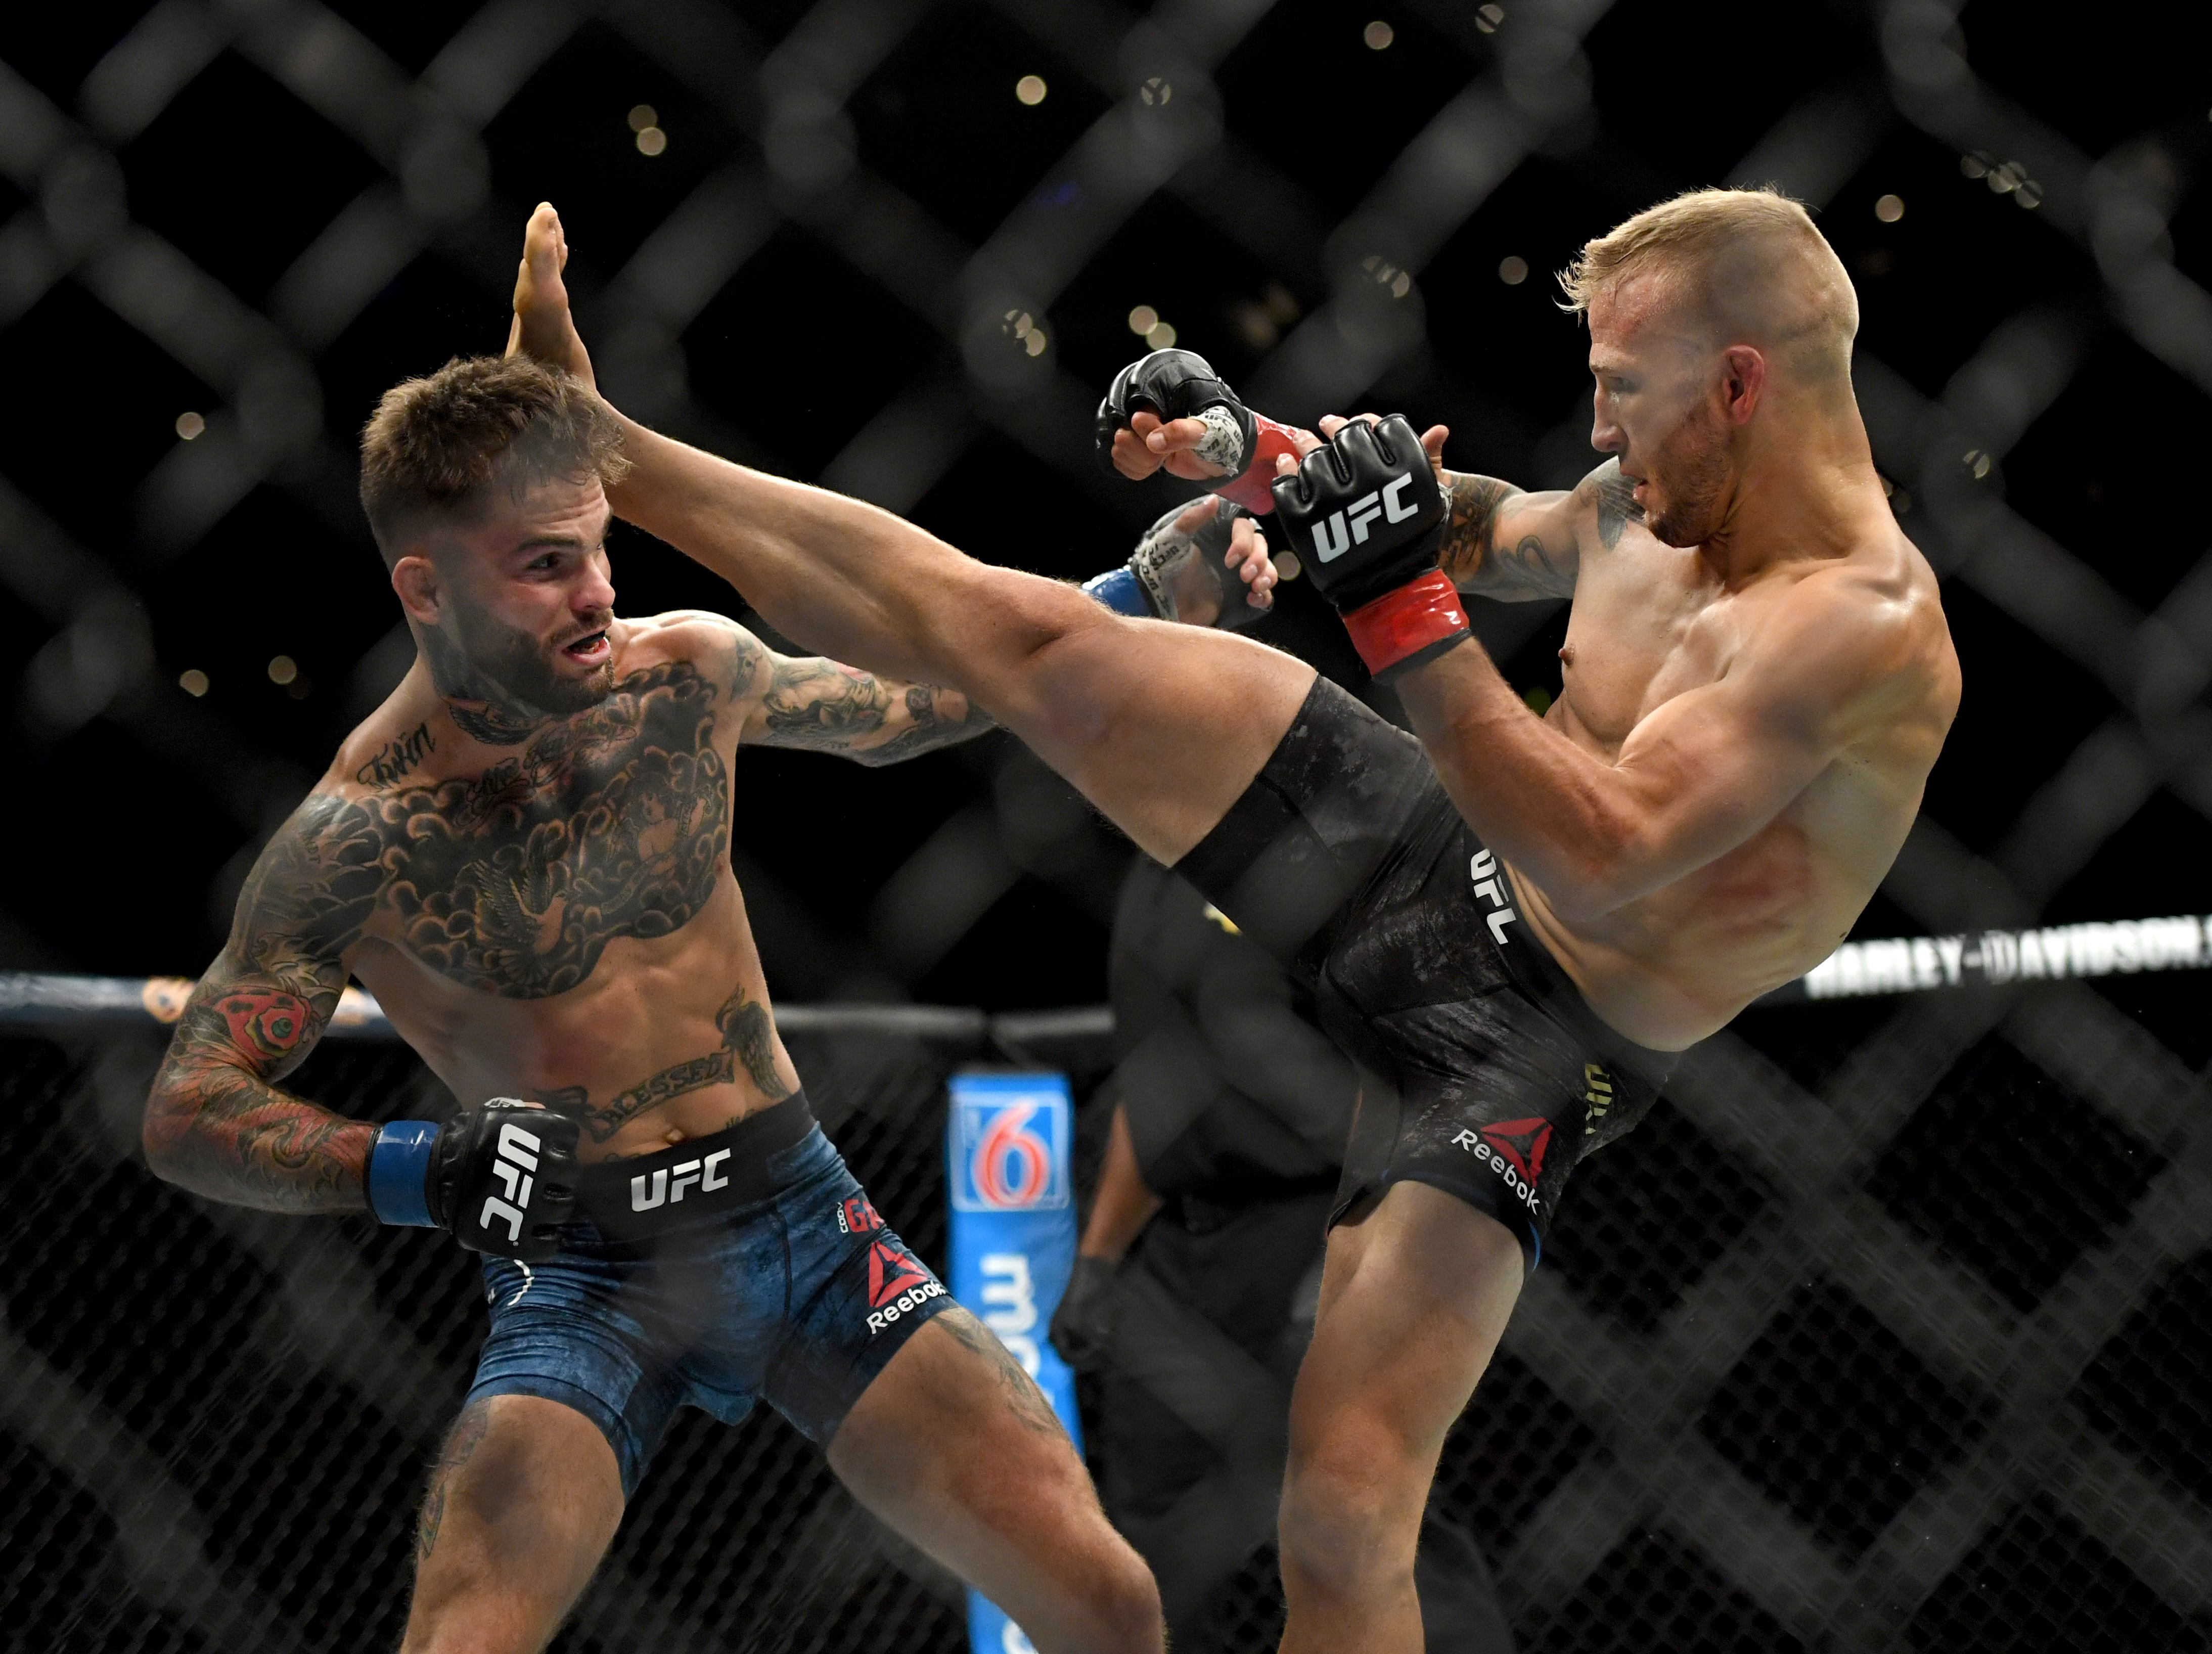 UFC News: T. J. Dillashaw told how the knee surgery went and when he will return to the octagon